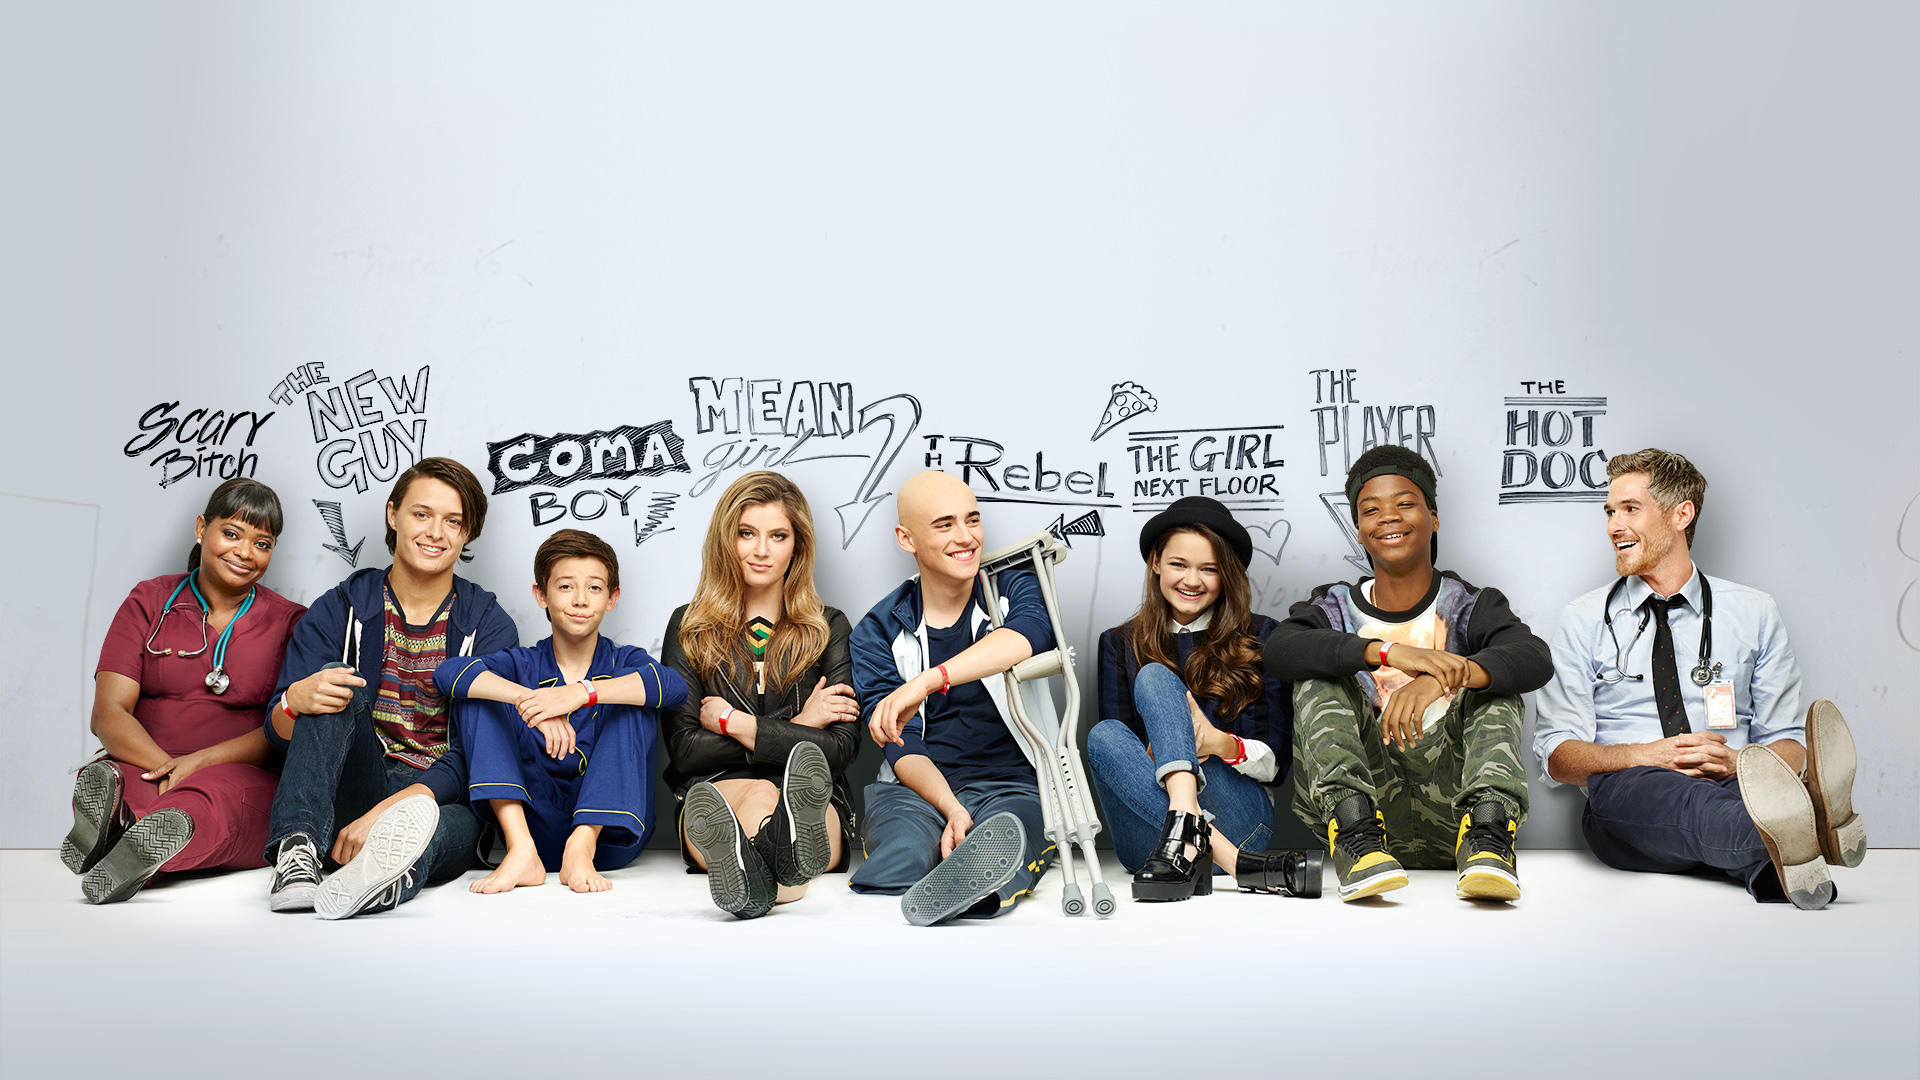 http://renewcanceltv.com/wp-content/uploads/2014/11/Red-Band-Society-cast.jpg